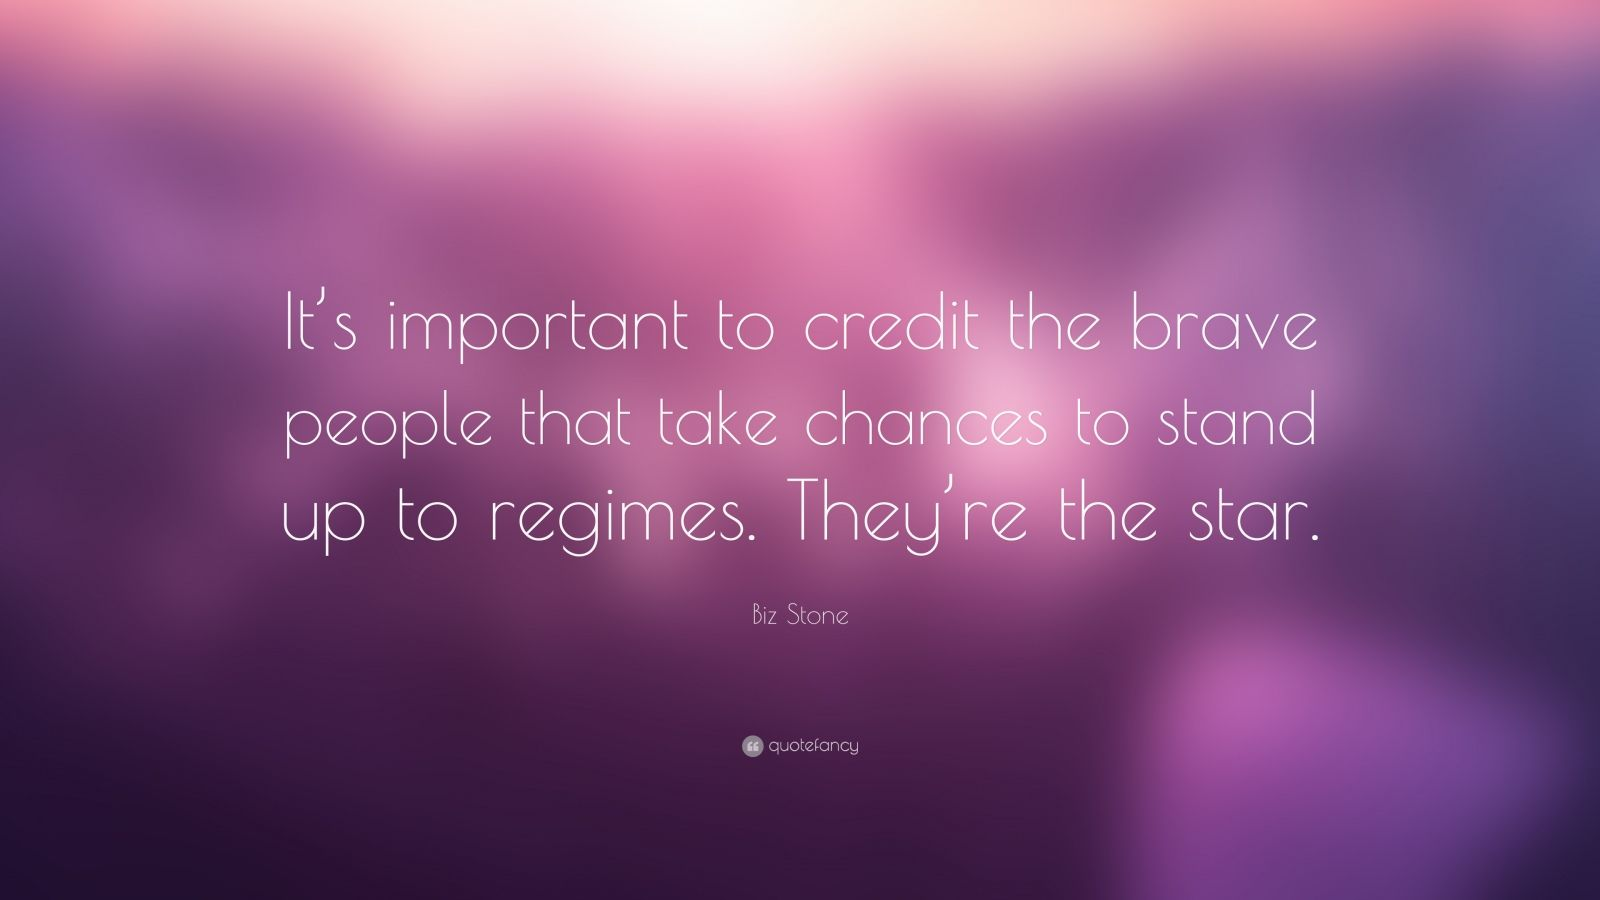 """Biz Stone Quote: """"It's important to credit the brave people that take chances to stand up to regimes. They're the star."""""""